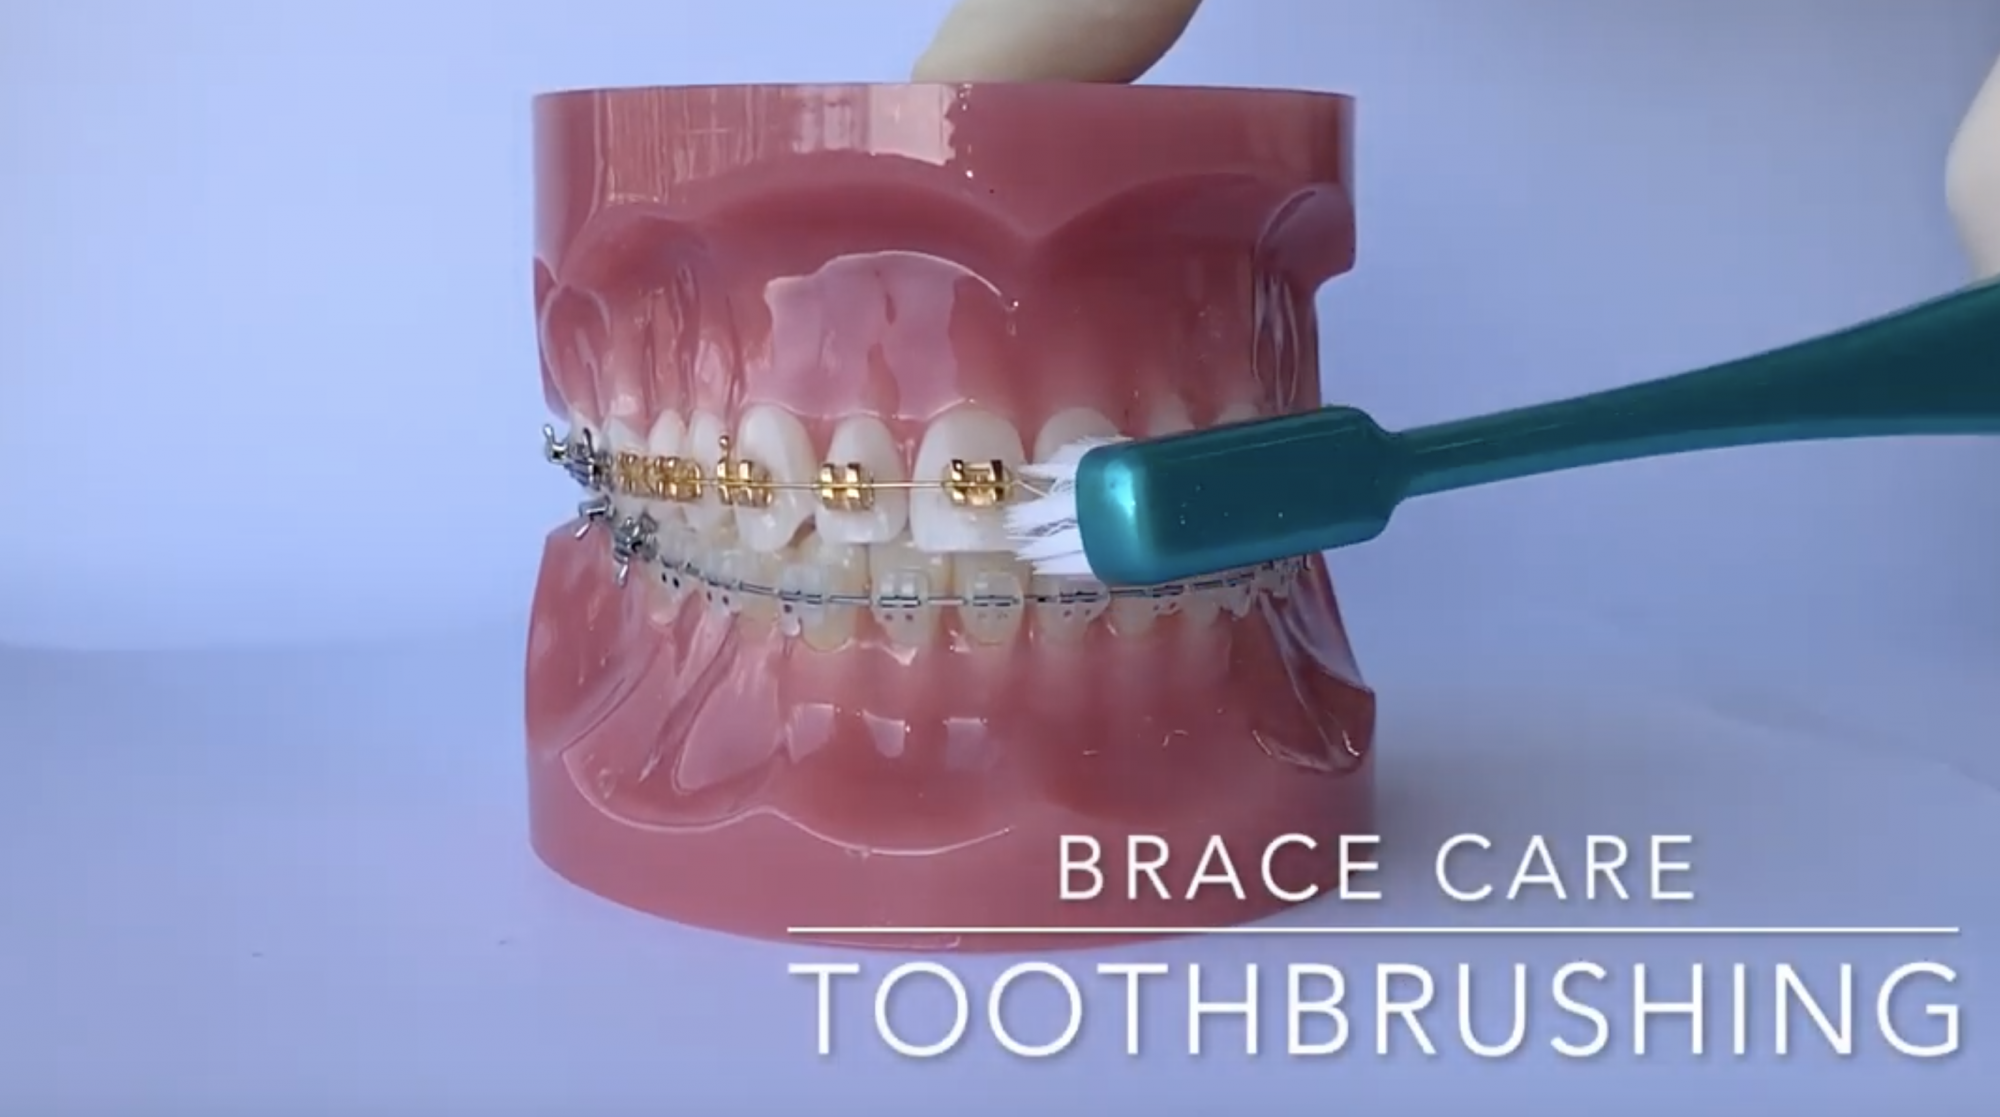 TOOTHBRUSHING FOR BRACES - the required method for brushing your brace